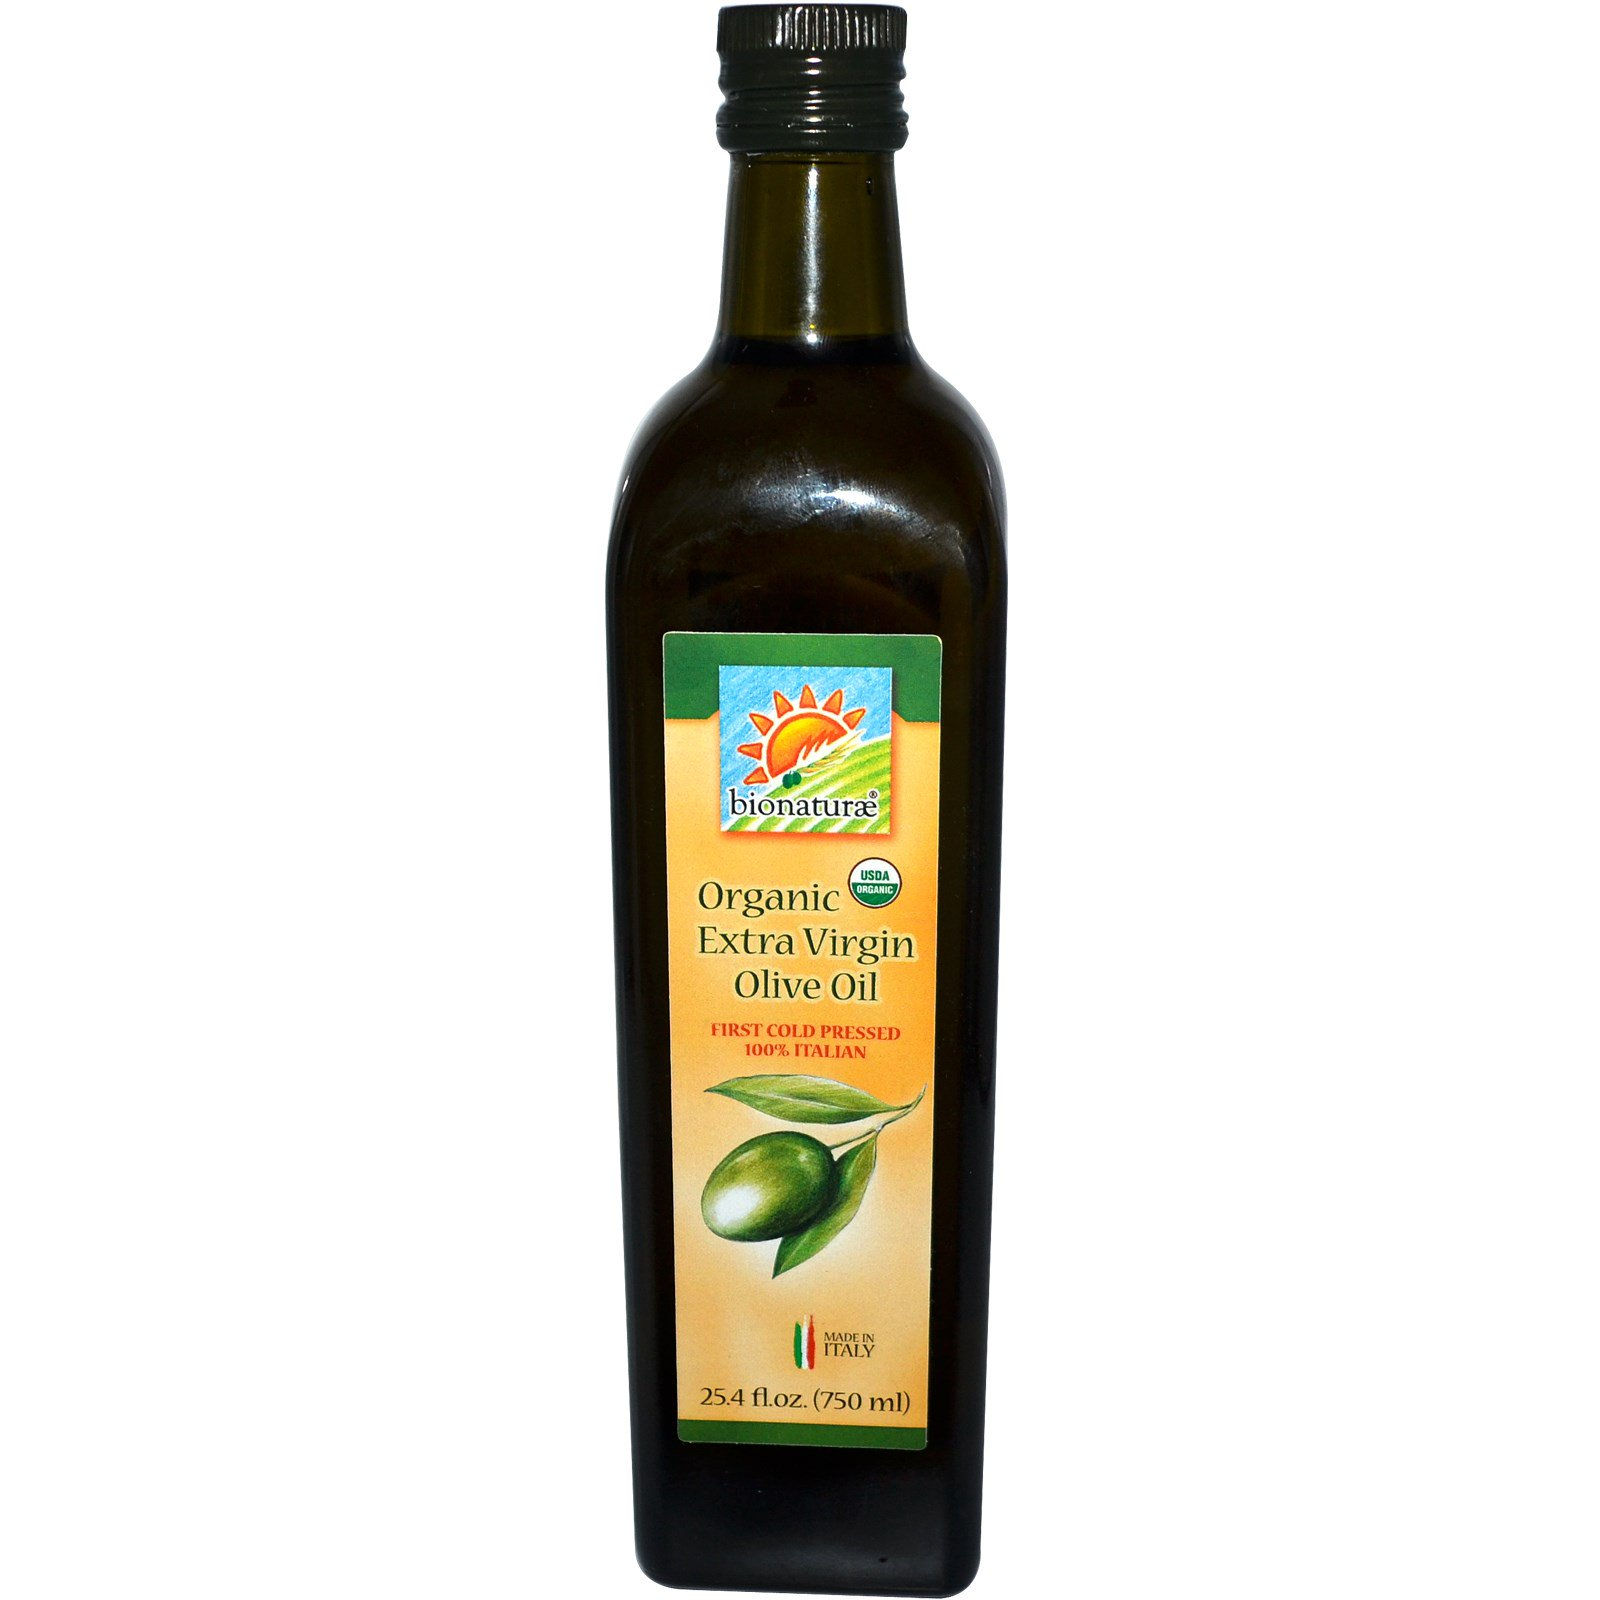 Bionaturae, Organic Extra Virgin Olive Oil, 25 4 fl oz (750 ml